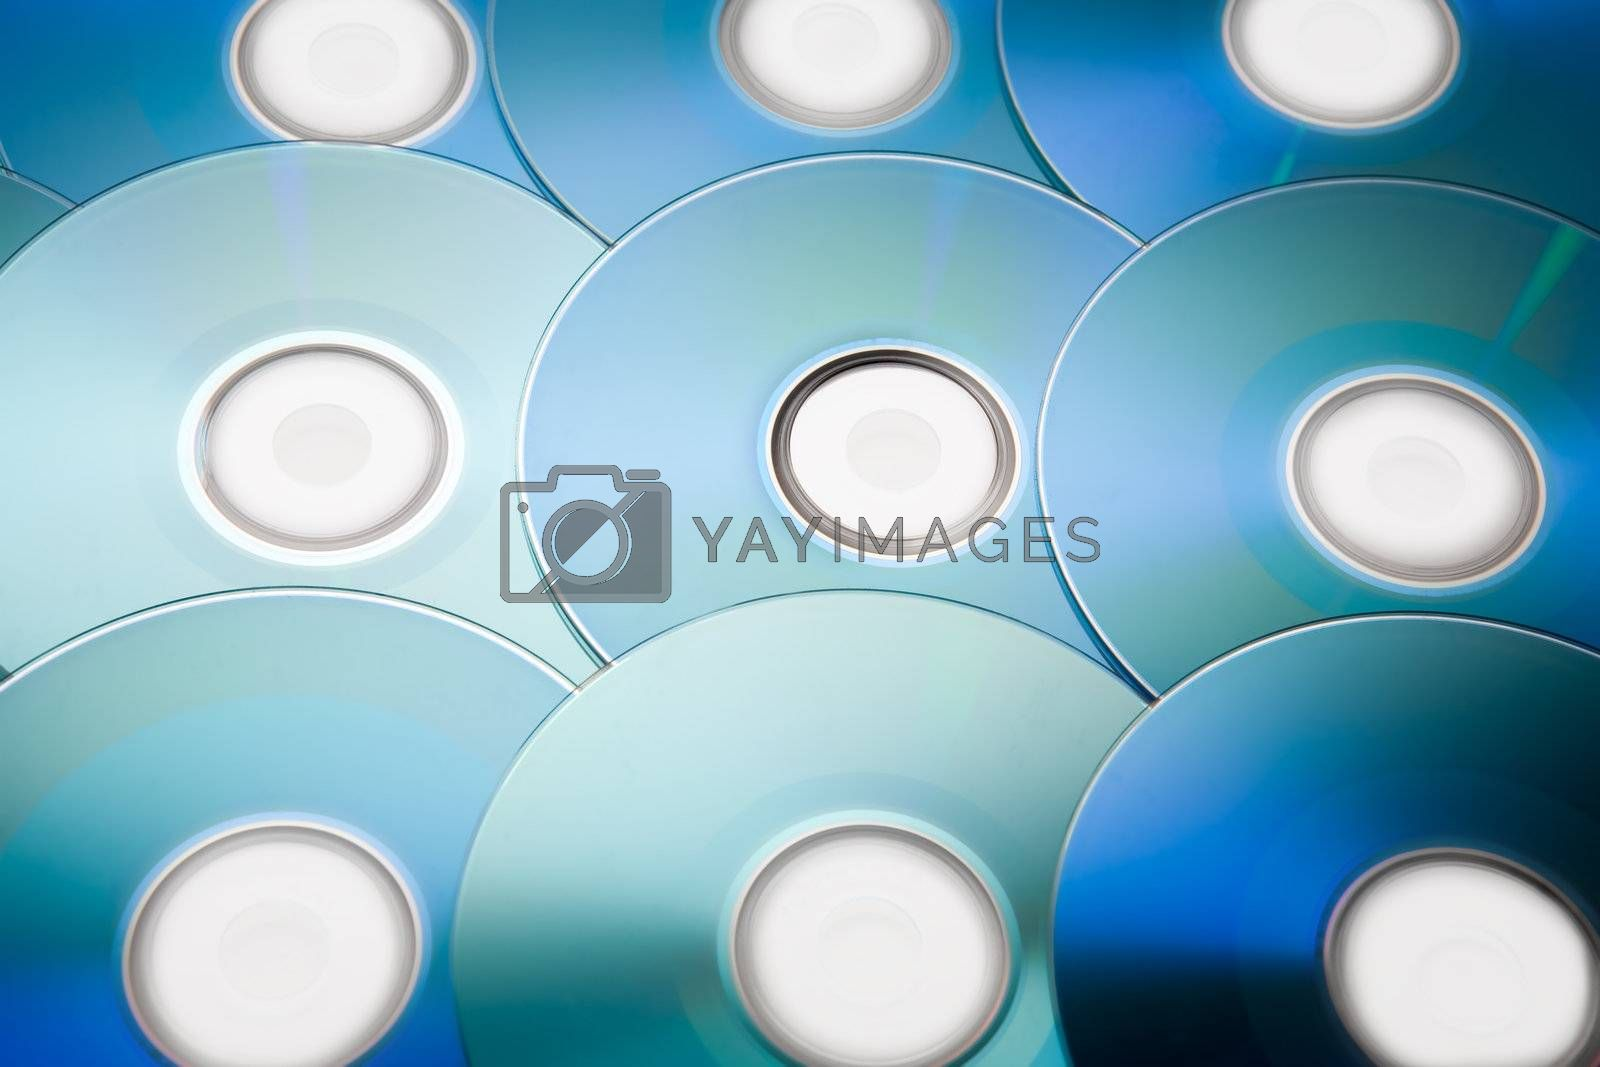 Royalty free image of Compact Discs by Luminis